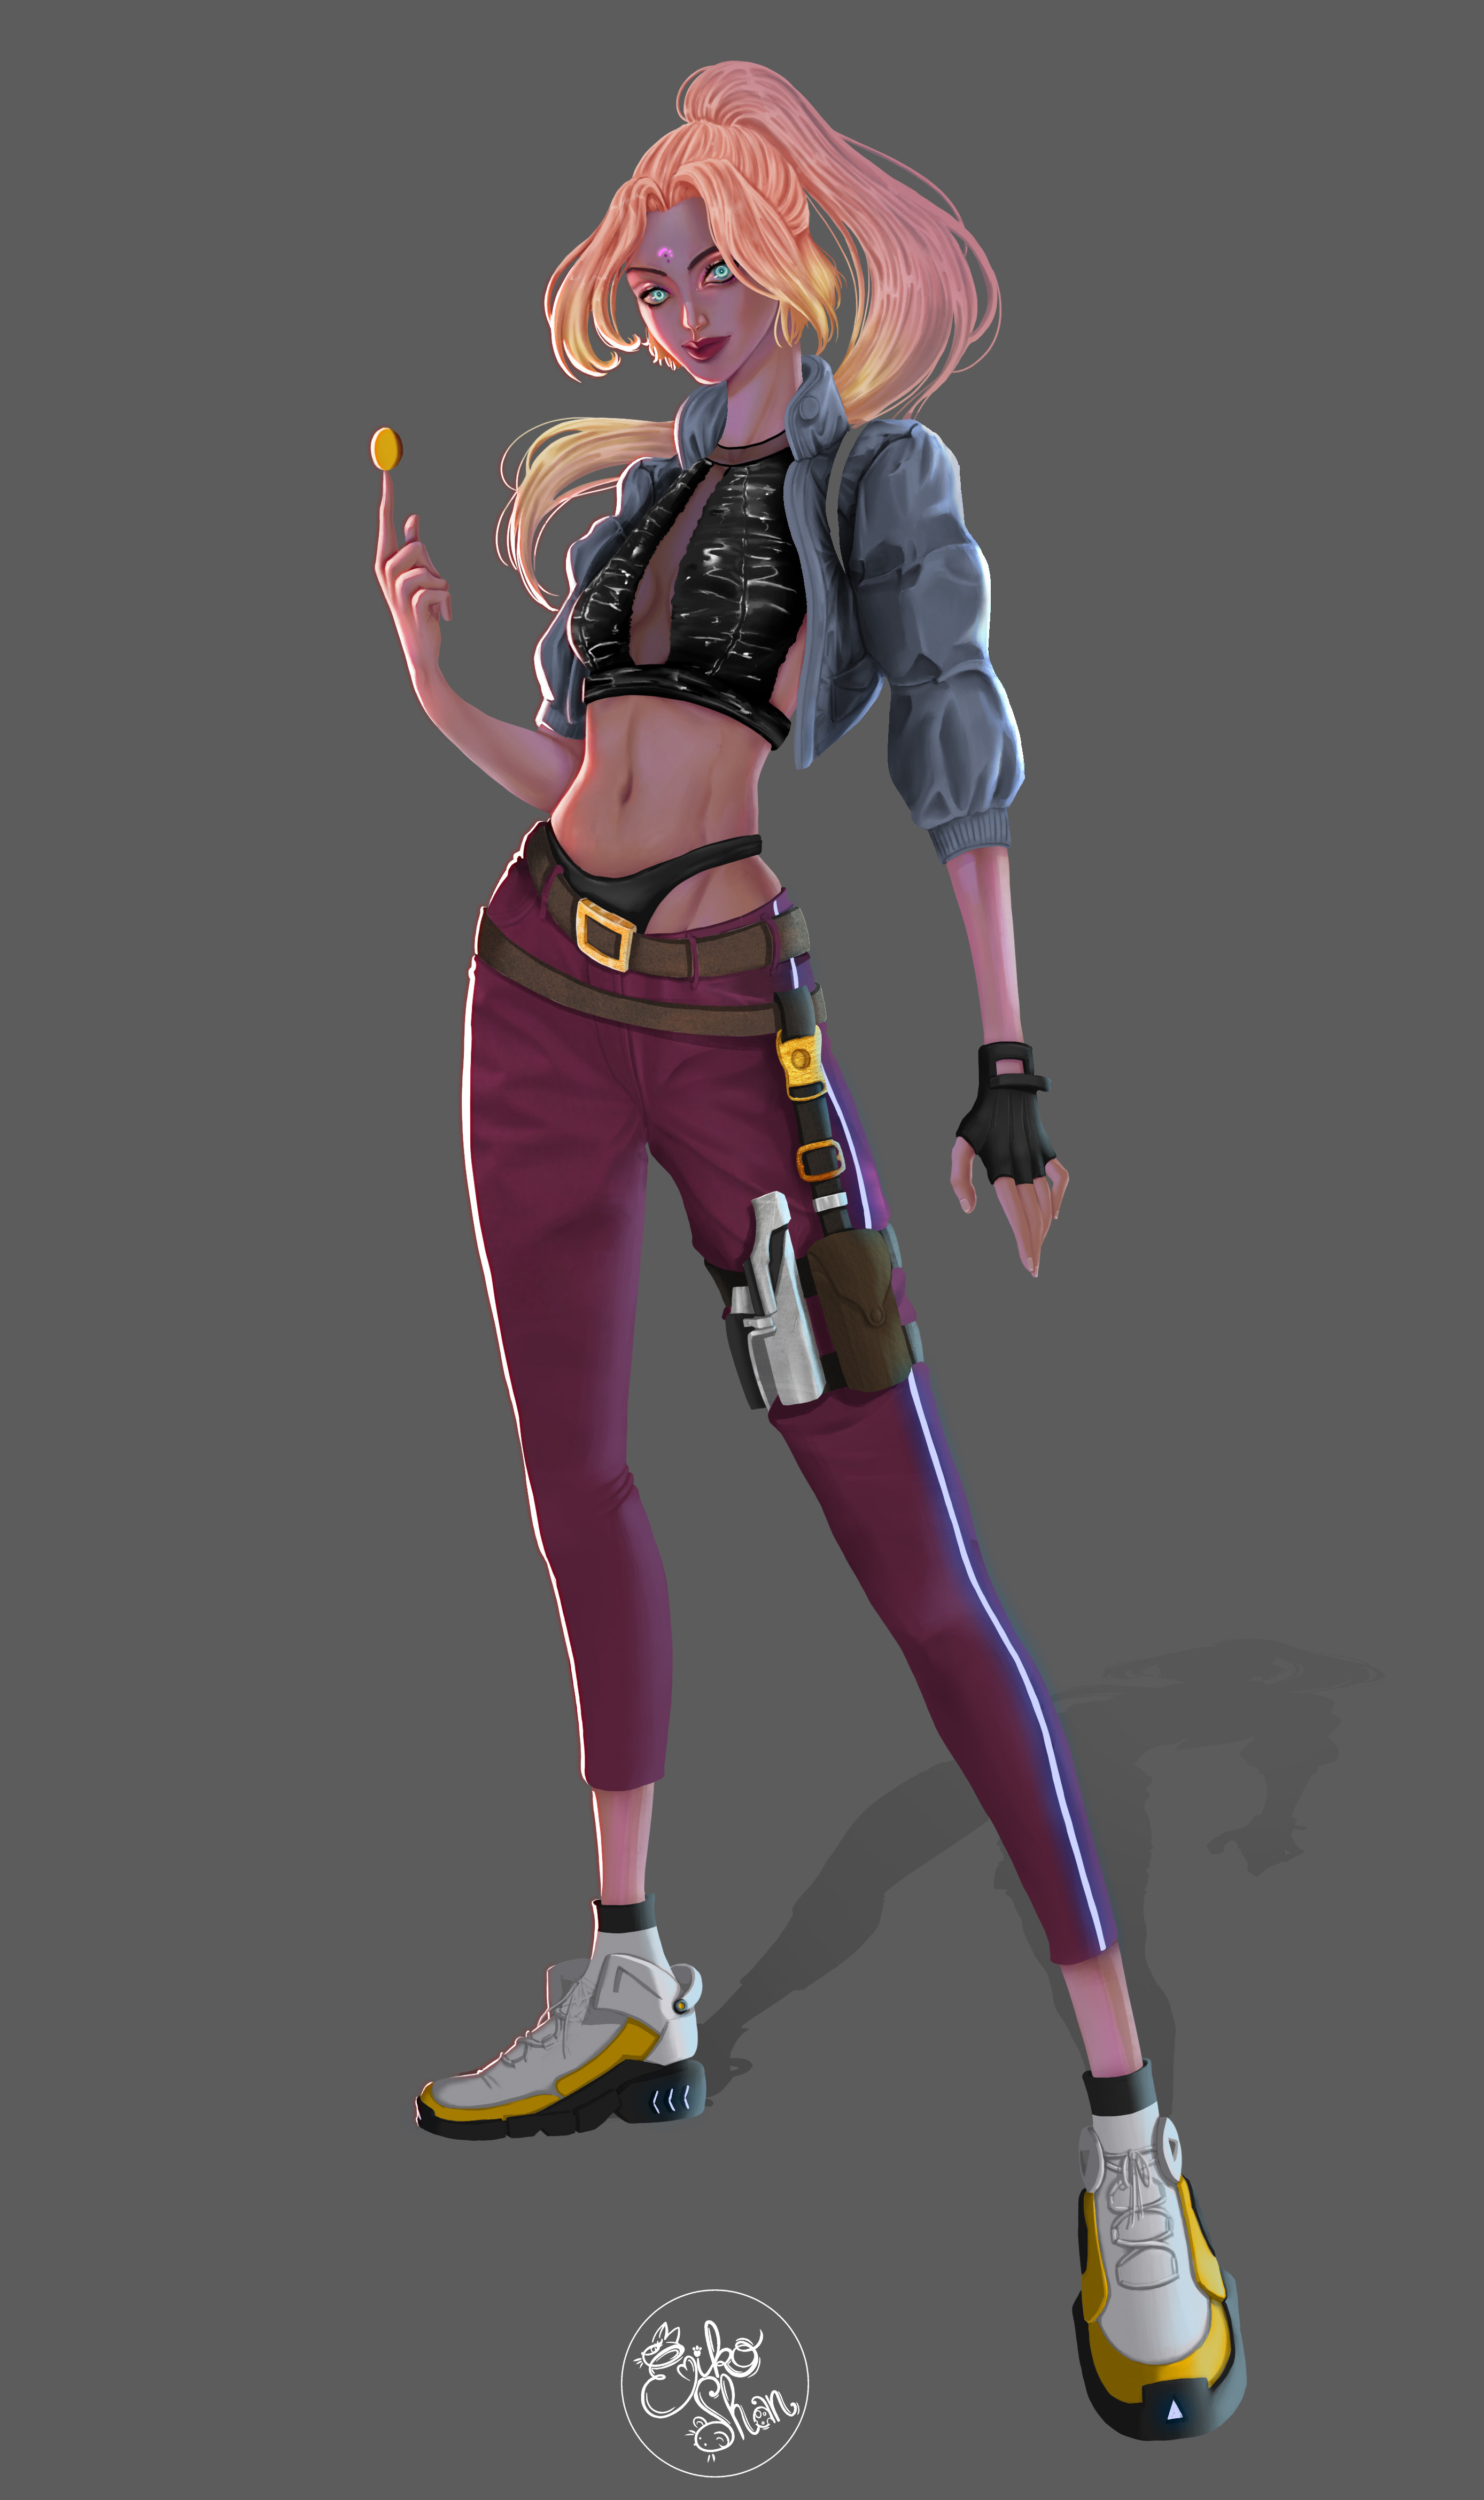 Androide in Cyberpunk style. This Character design will be use for a manga.